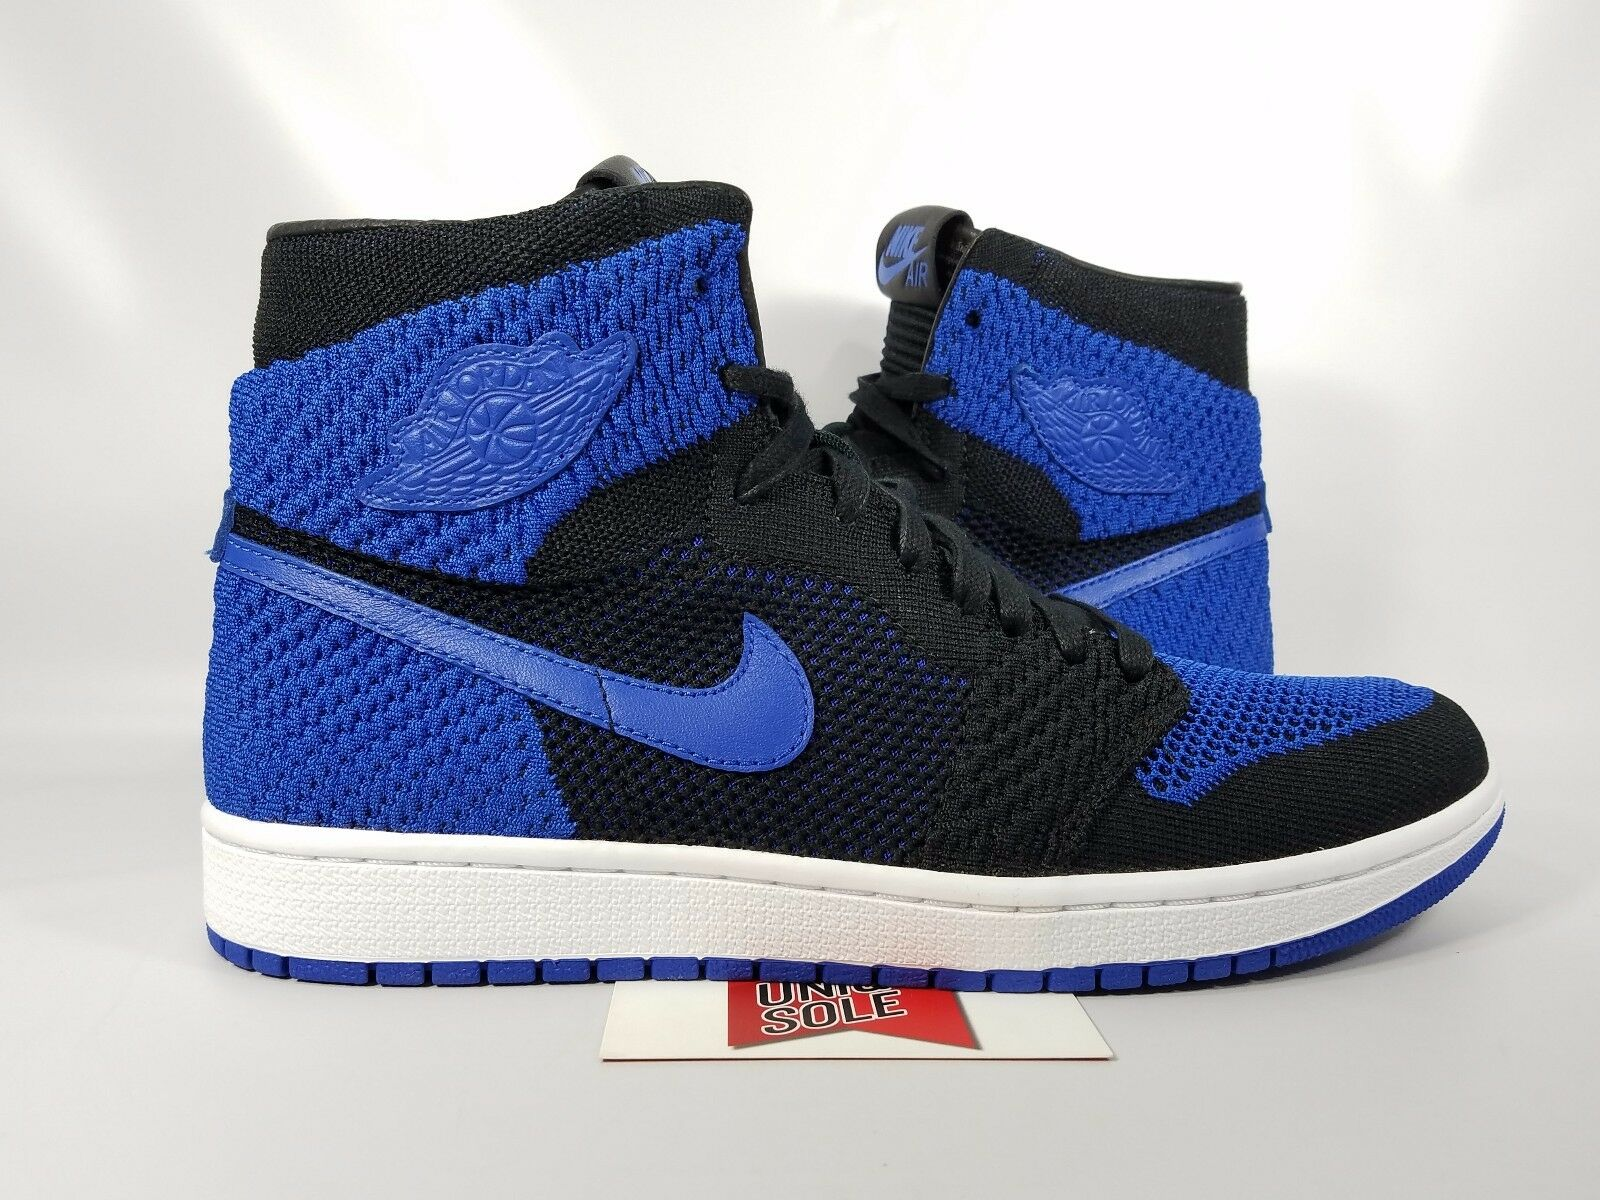 a7027da3413b42 Nike Air Jordan 1 Retro High Flyknit Mens Basketball Shoes 10 Black ...